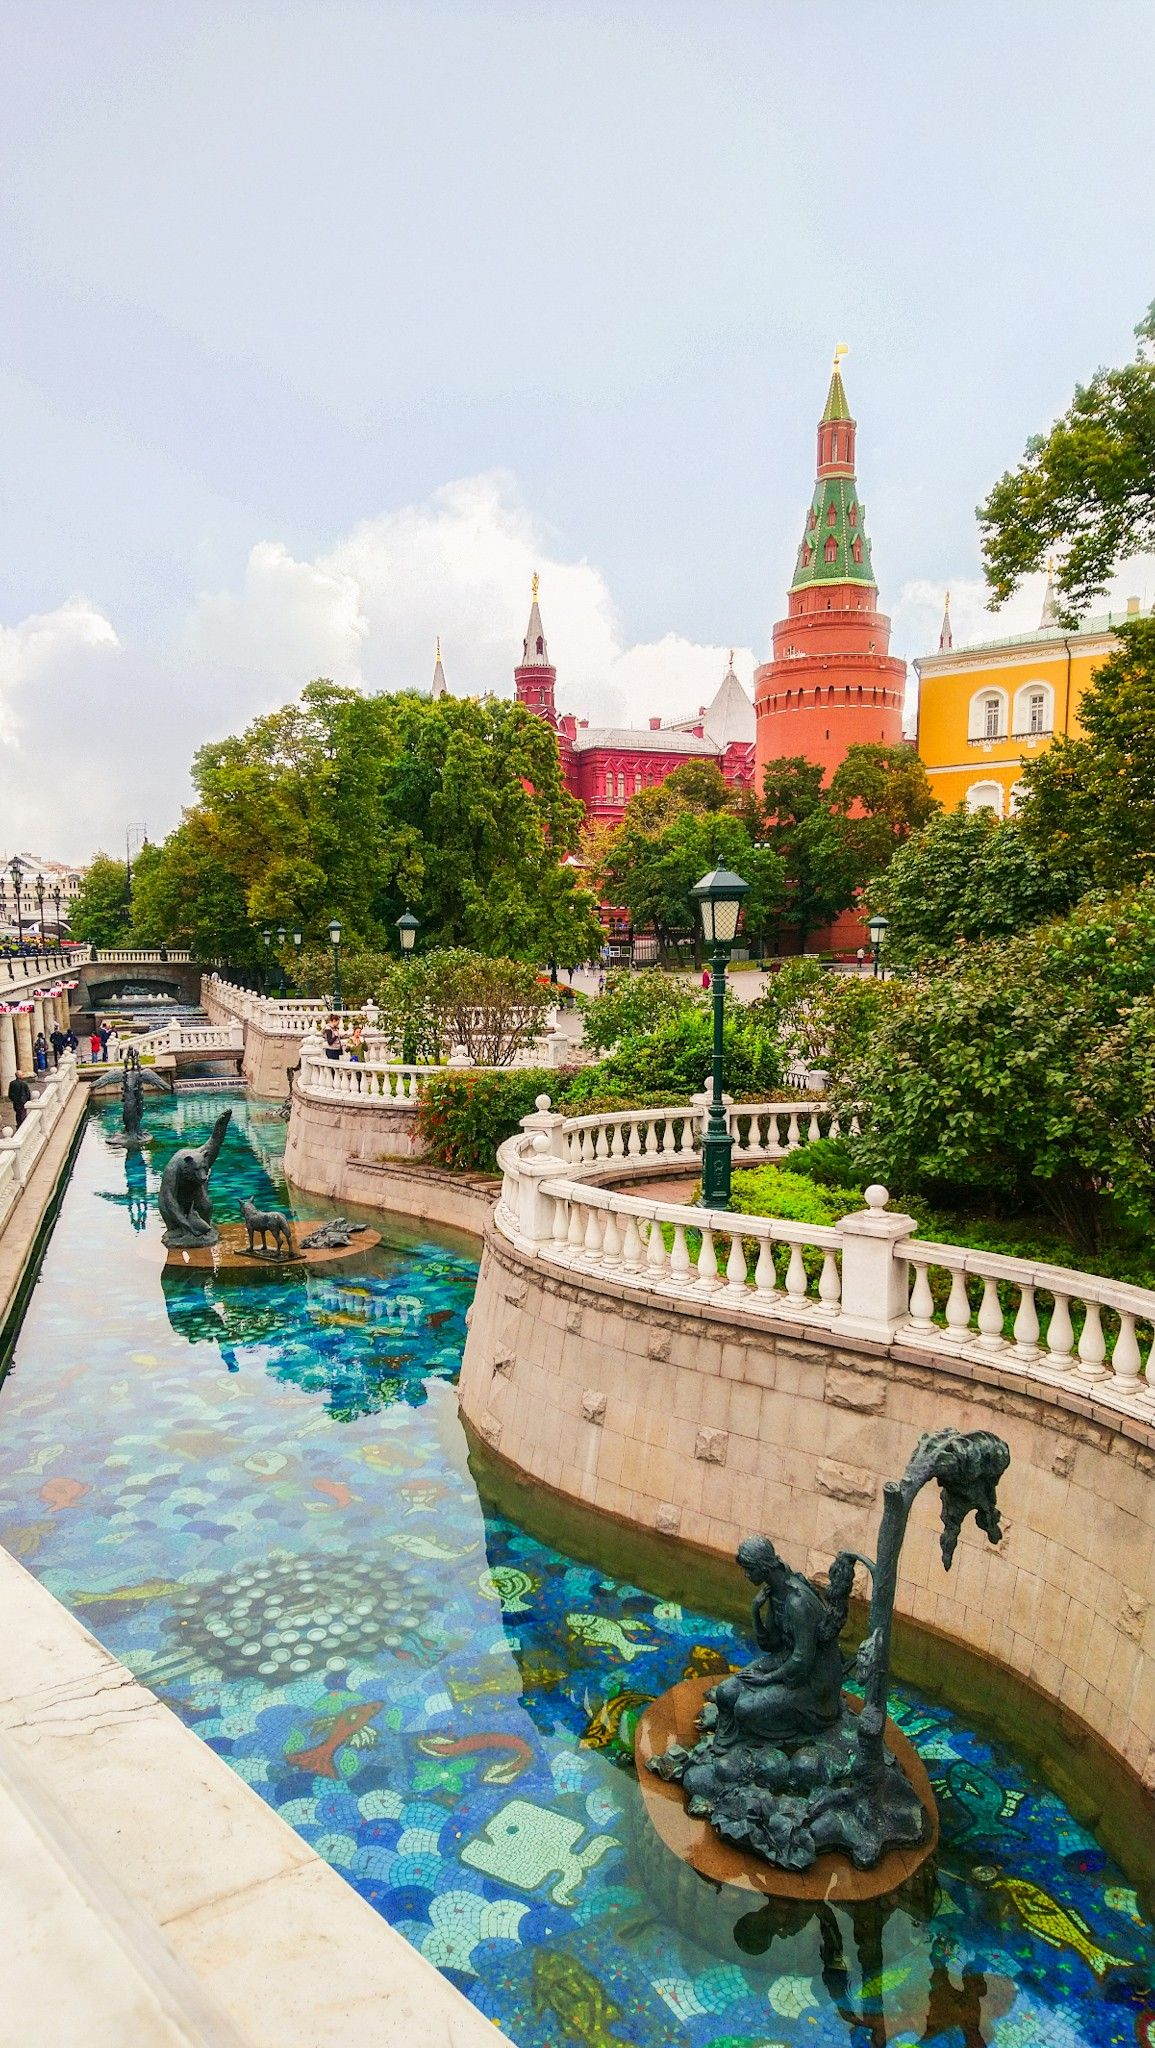 Alexander Garden in Moscow, Russia is one of the must-see places of the city  #travelrussia #moscow #russia #russiatravel